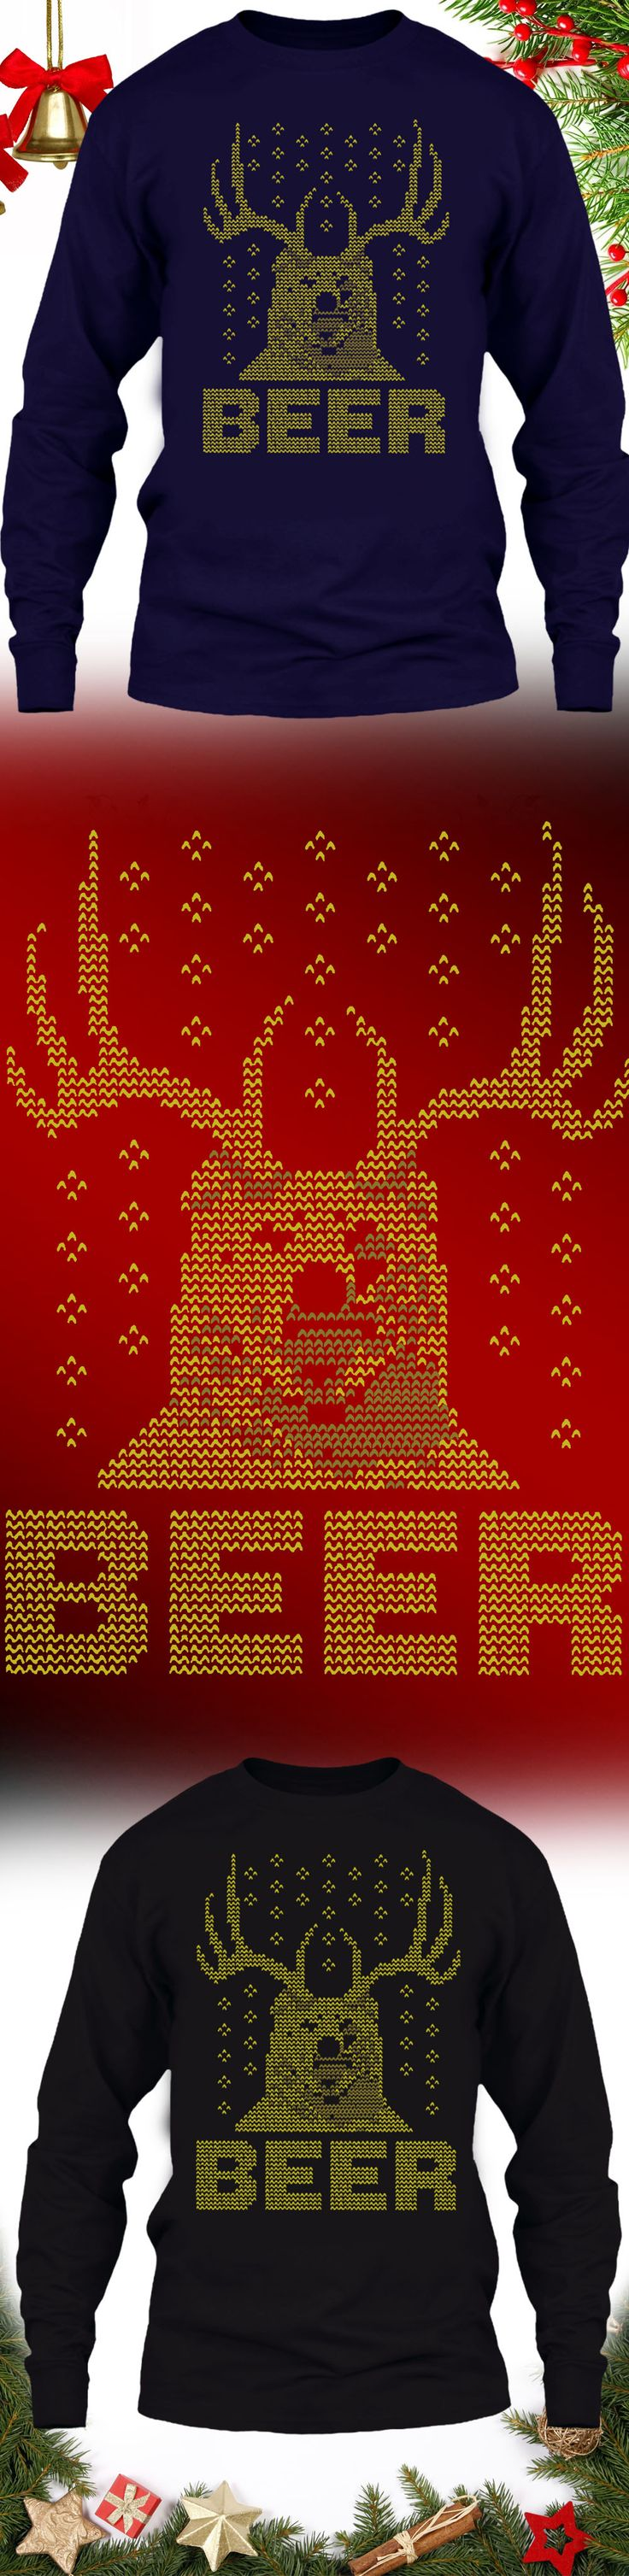 Hunting Christmas Sweater Beer Deer - Get this limited edition ugly Christmas Sweater just in time for the holidays! Only 2 days left for FREE SHIPPING, click to buy now!